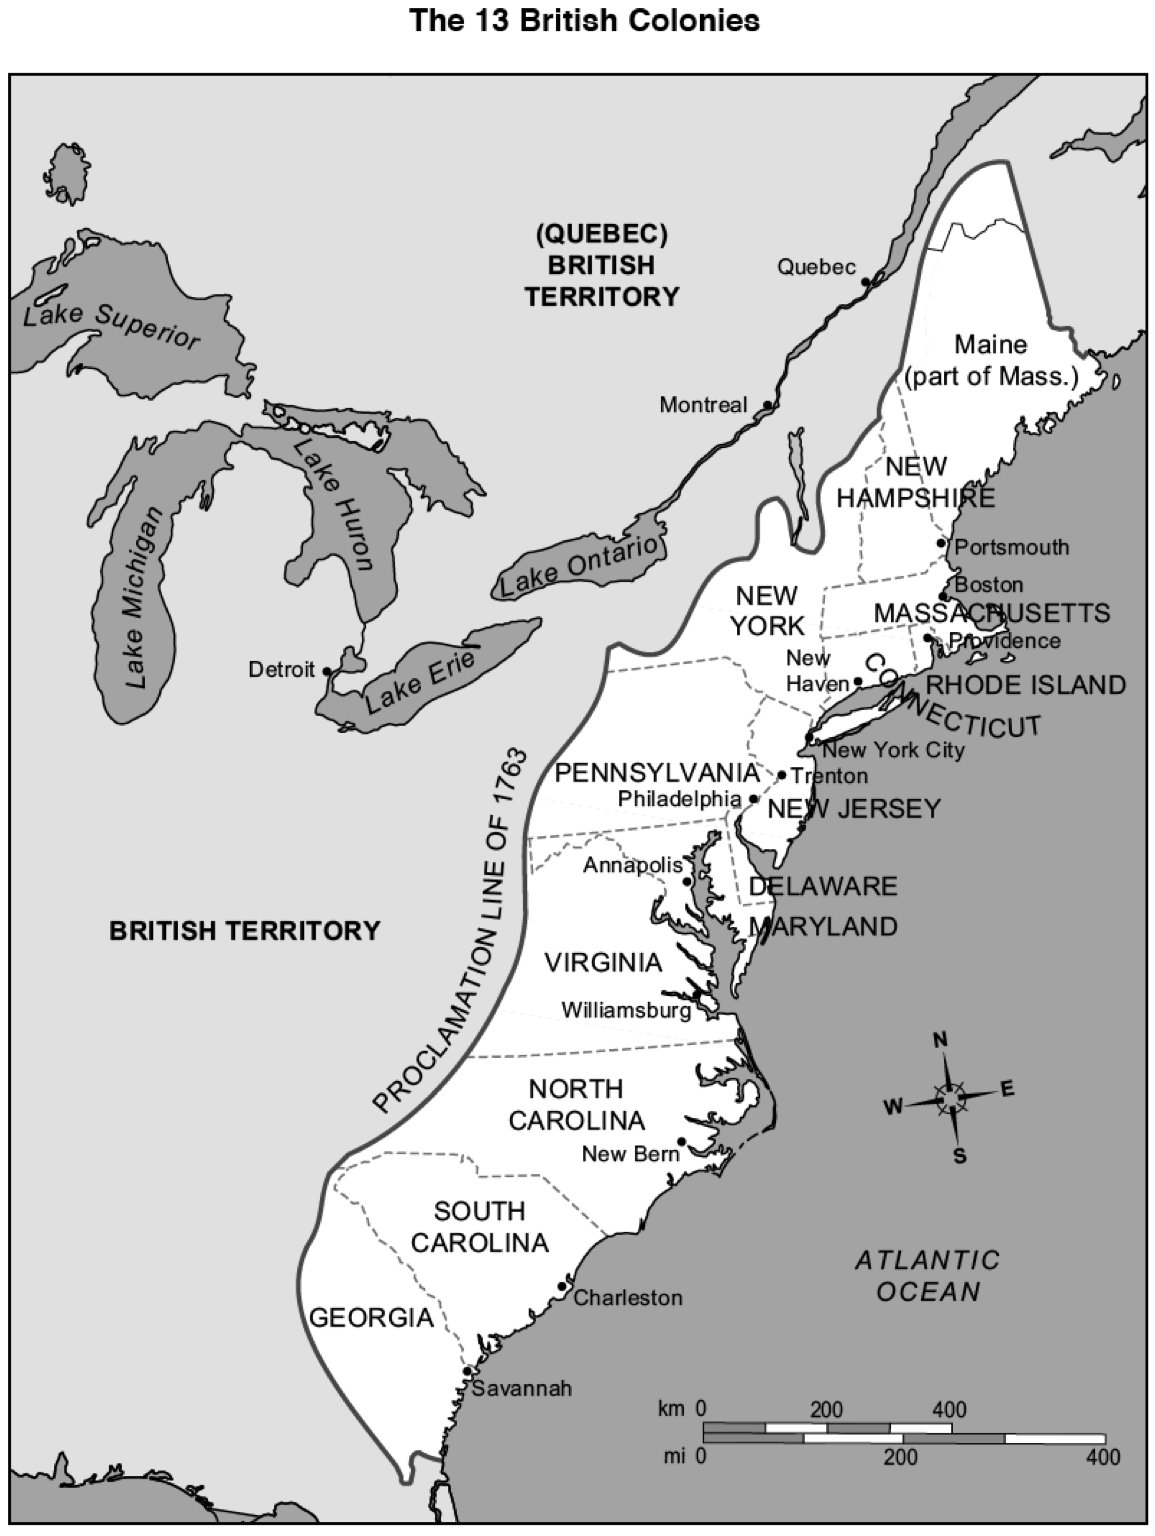 small resolution of 13 colonies map - Google Search   13 colonies map